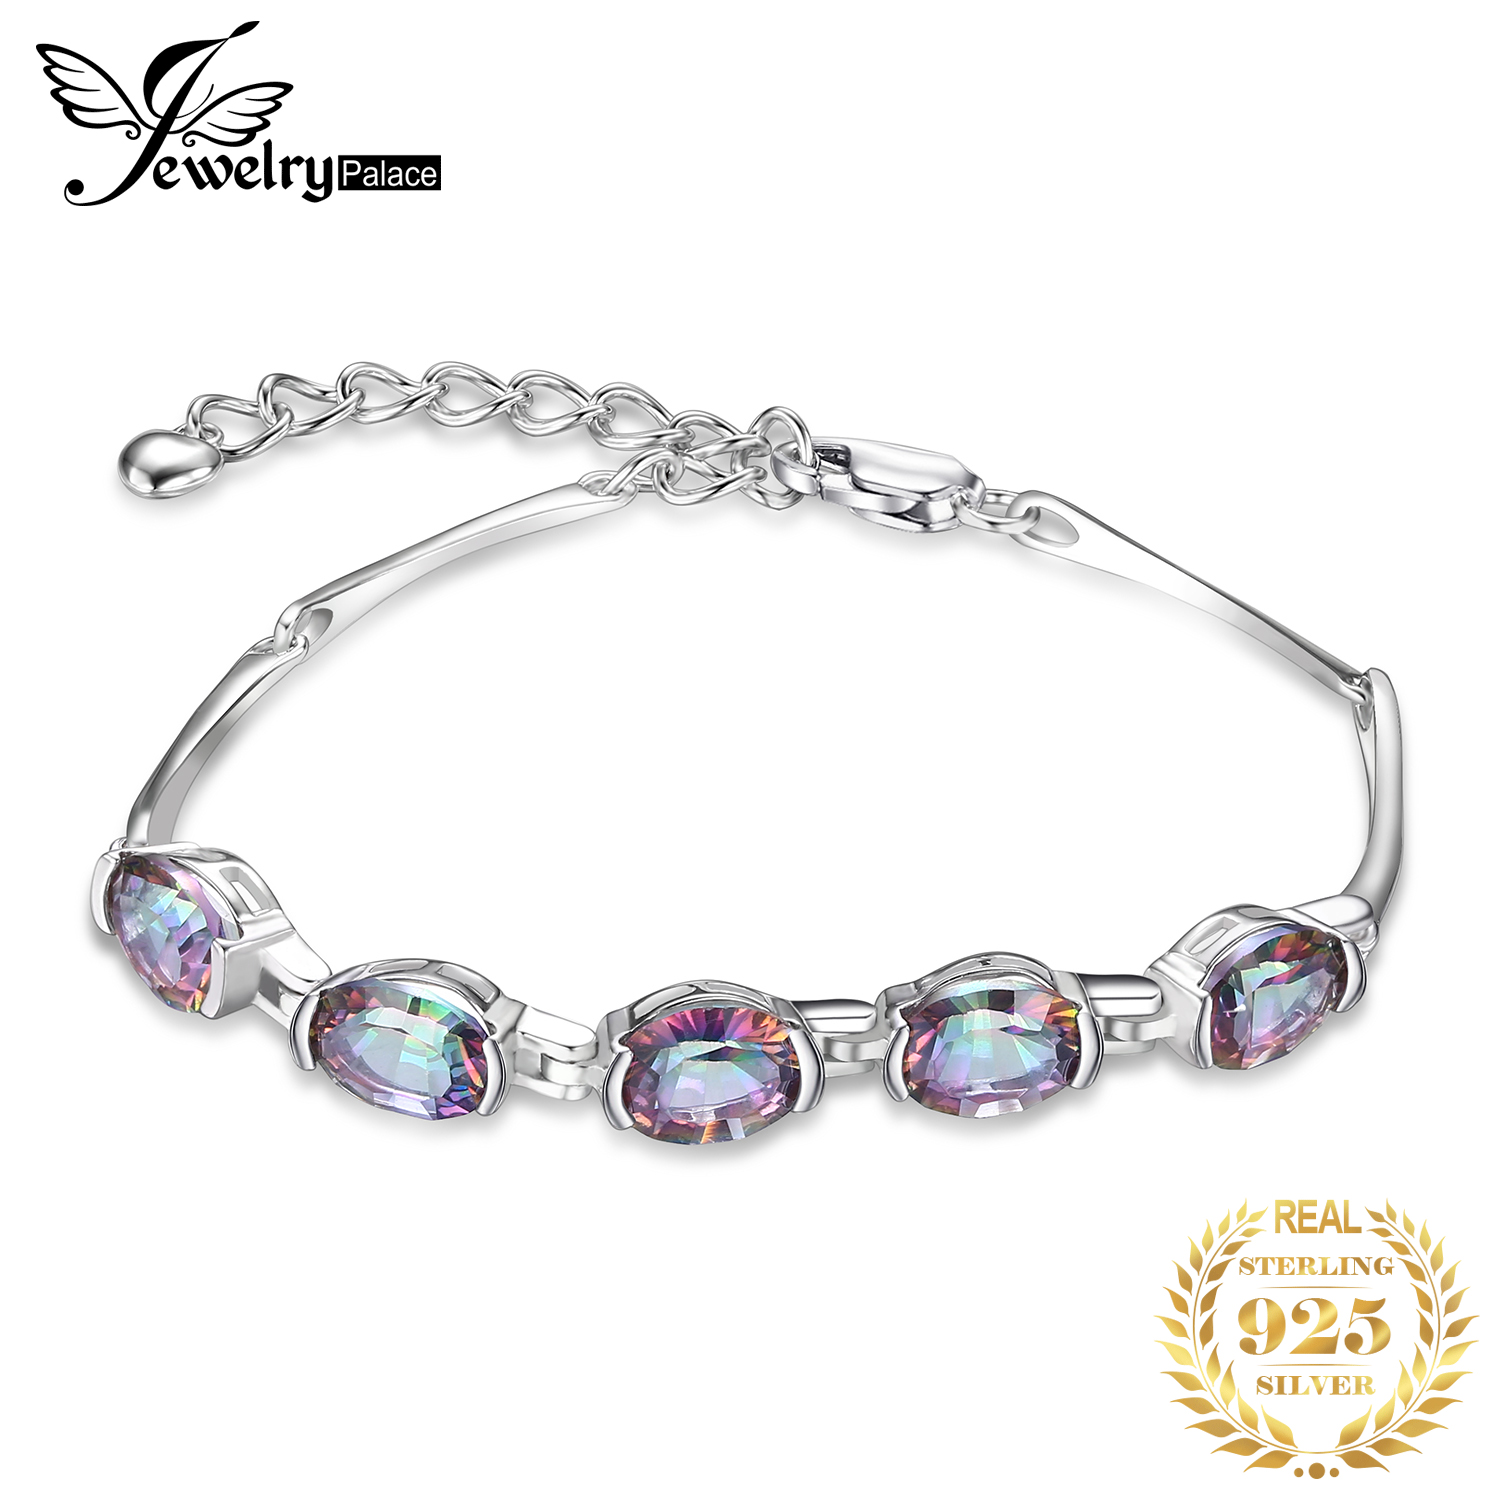 JewelryPalace Natural Mystic Topaz 925 Sterling Silver Bracelet Tennis Gemstones Bracelets For Women Silver 925 Jewelry Making